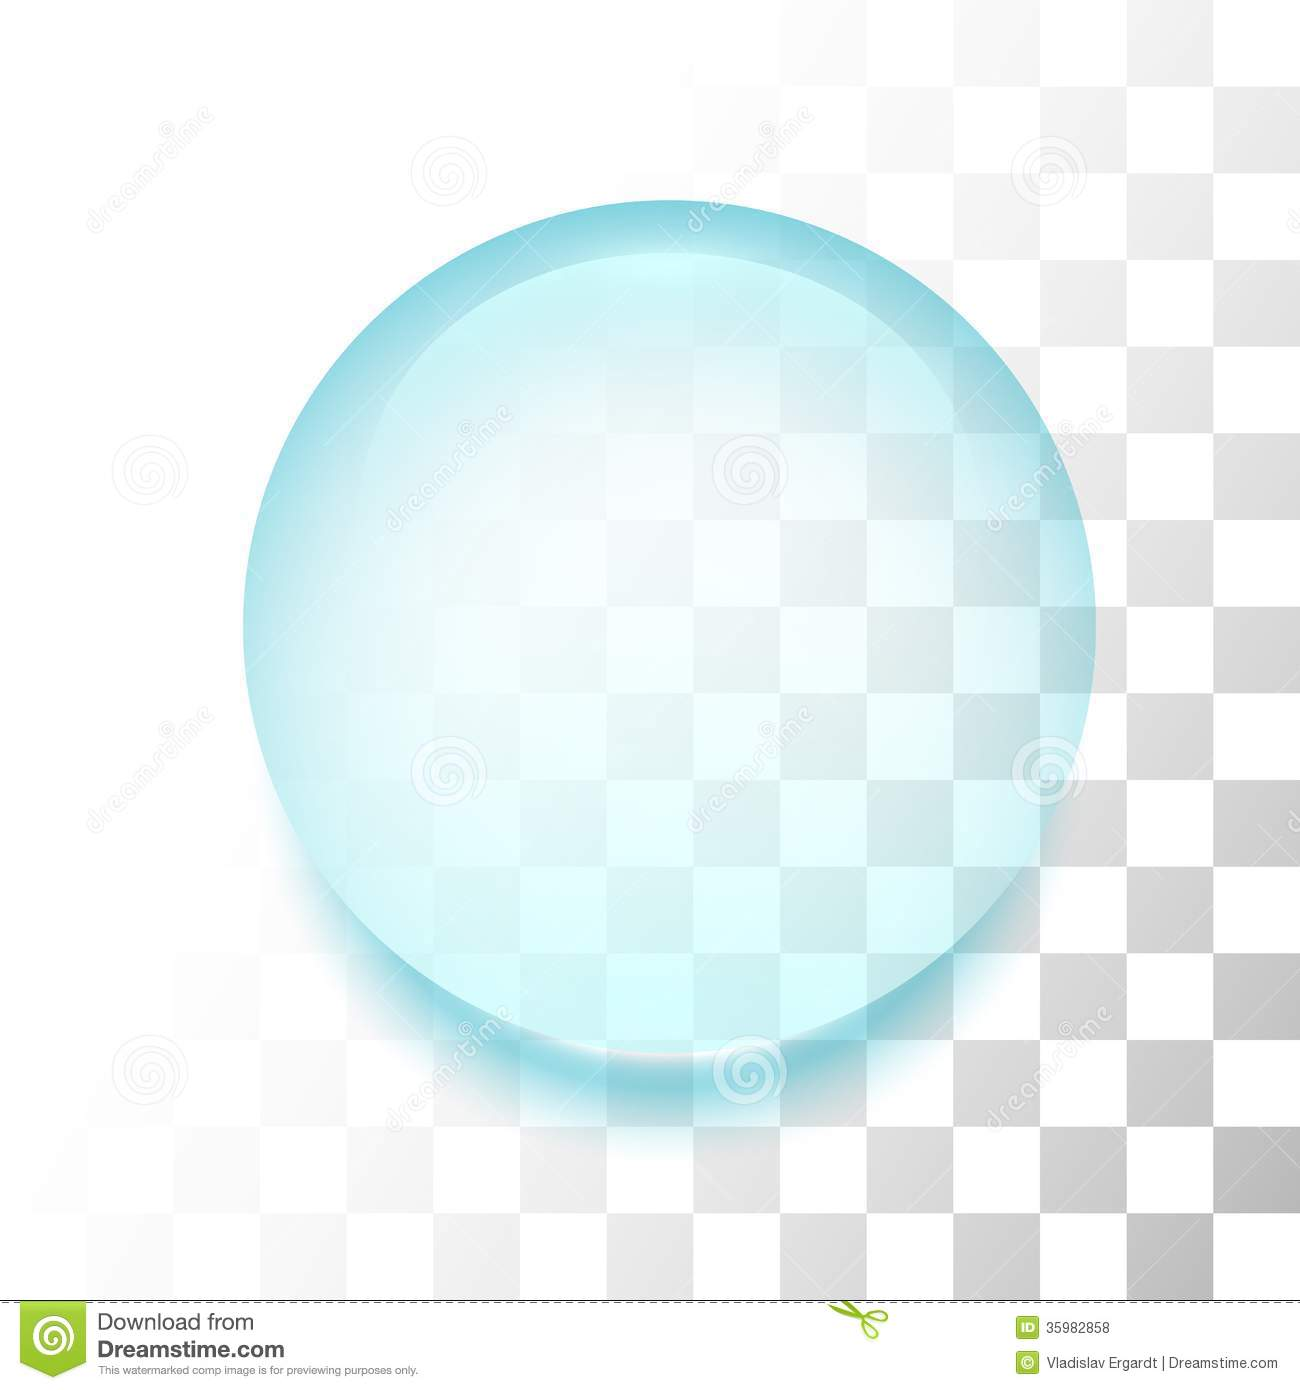 Transparent Drop With Shadow And Reflection Royalty Free Stock Photos ...